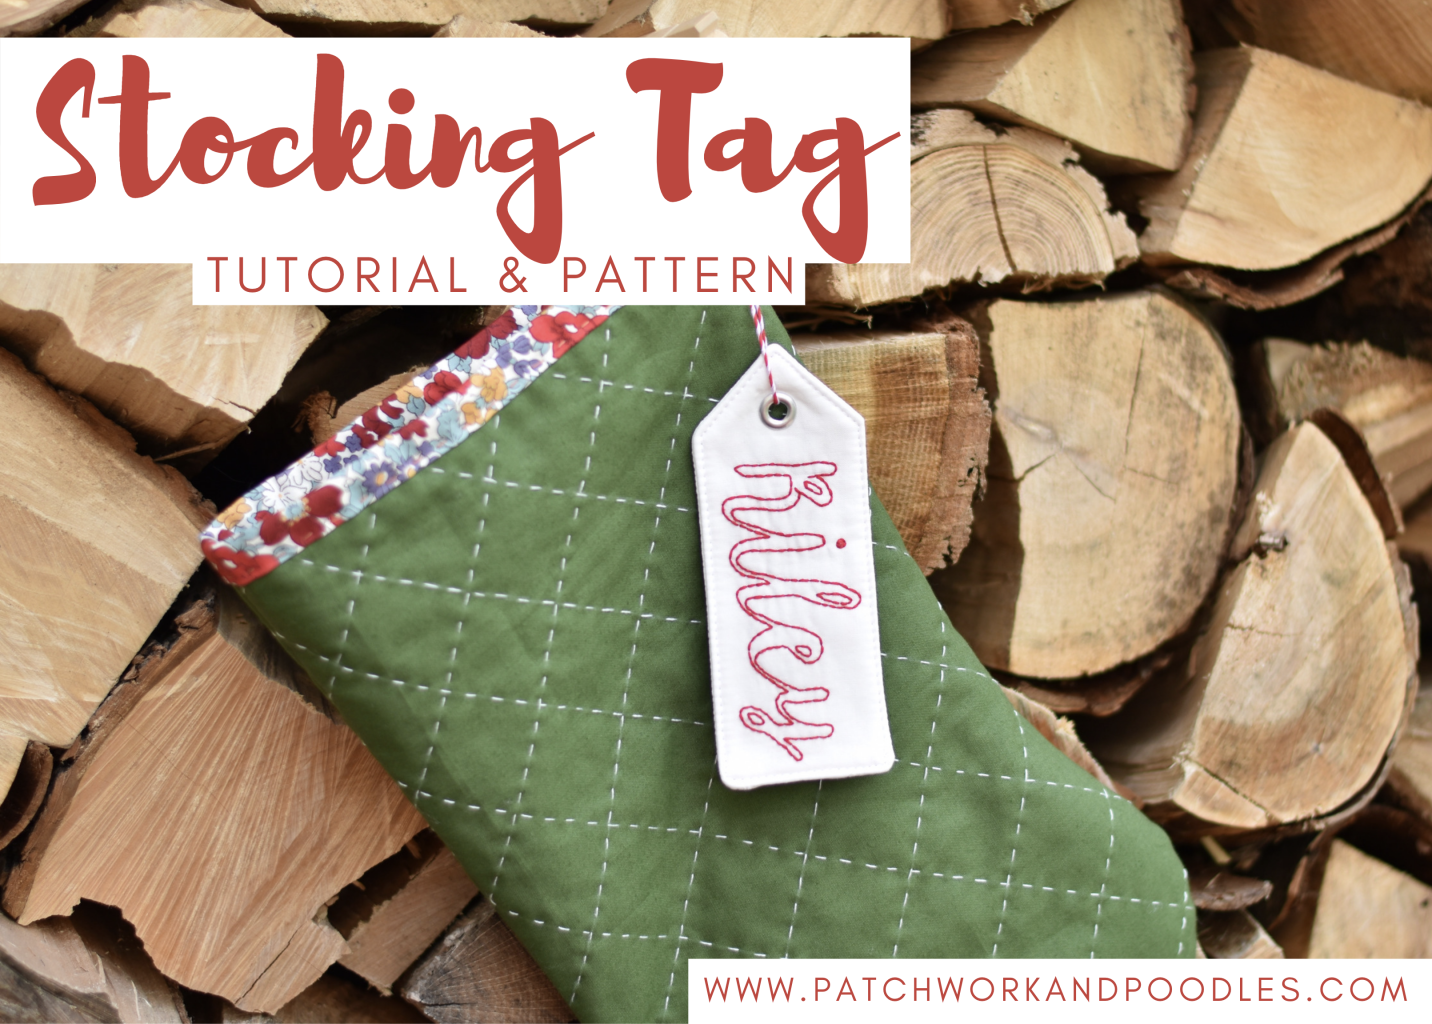 free stocking tag tutorial embroidery and machine